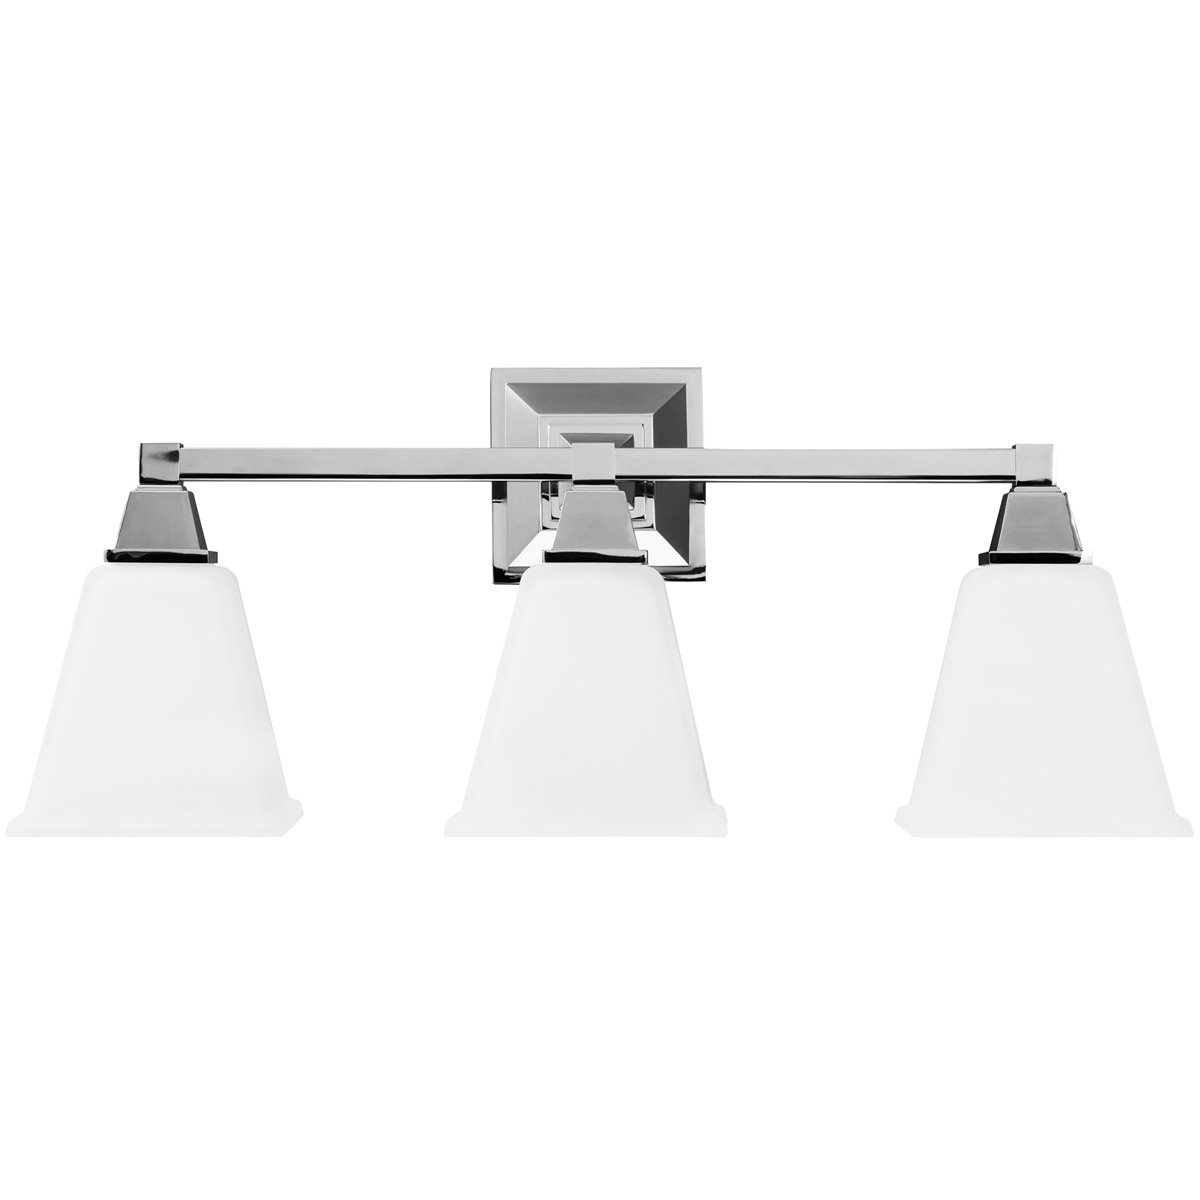 Sea Gull Denhelm 3 Light Bath Vanity in Chrome 4450403BLE-05